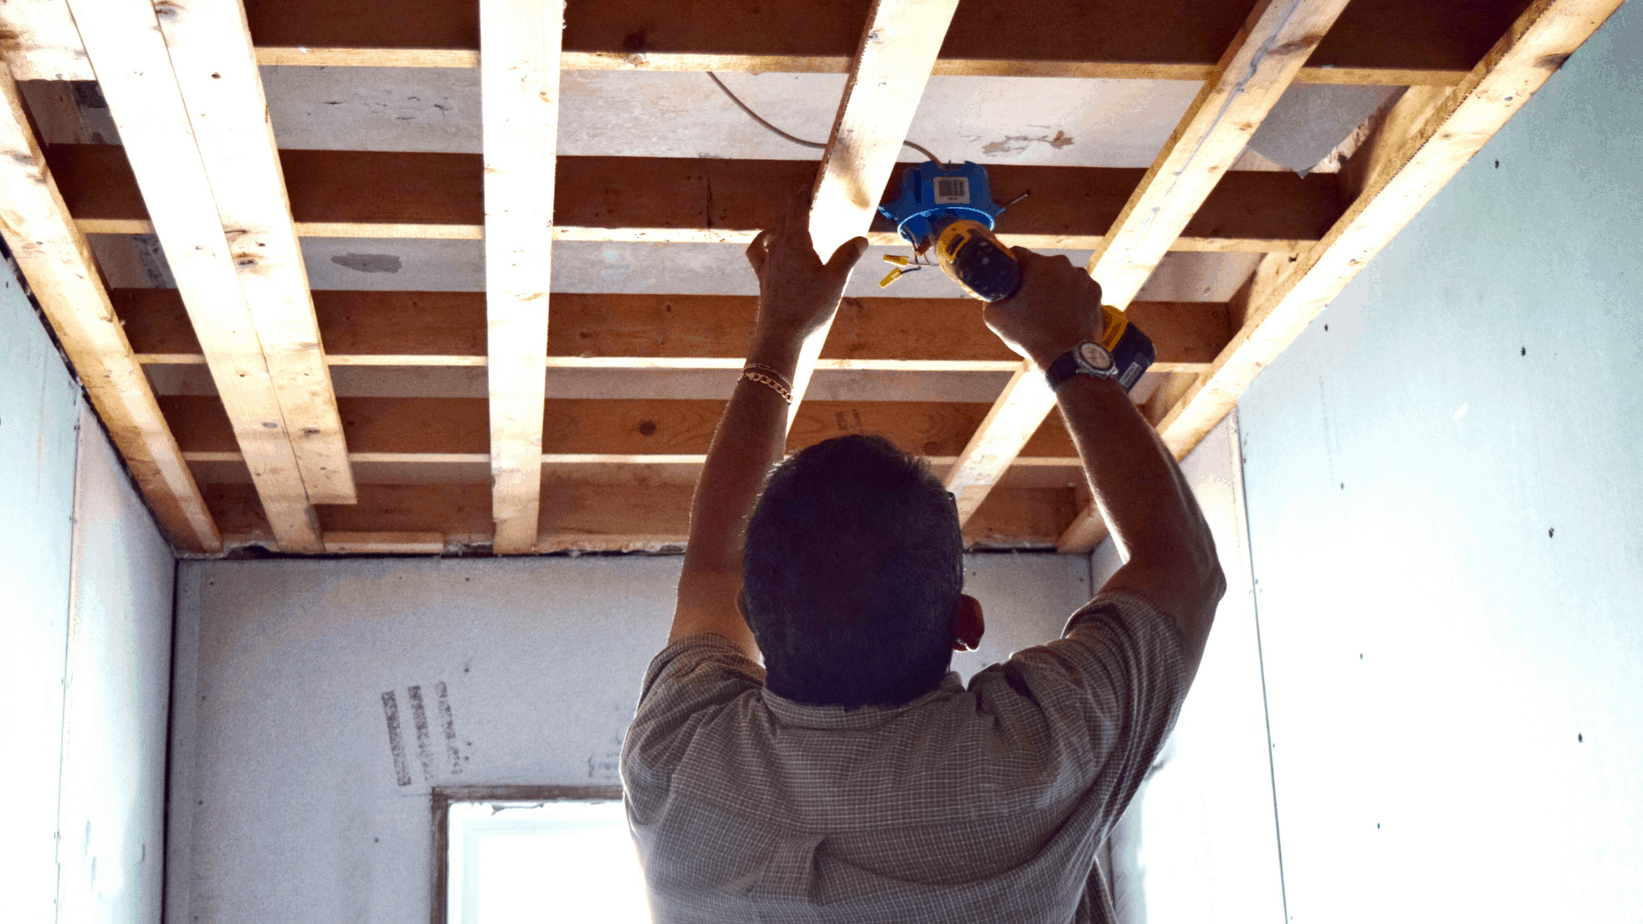 How to get started in the house flipping business